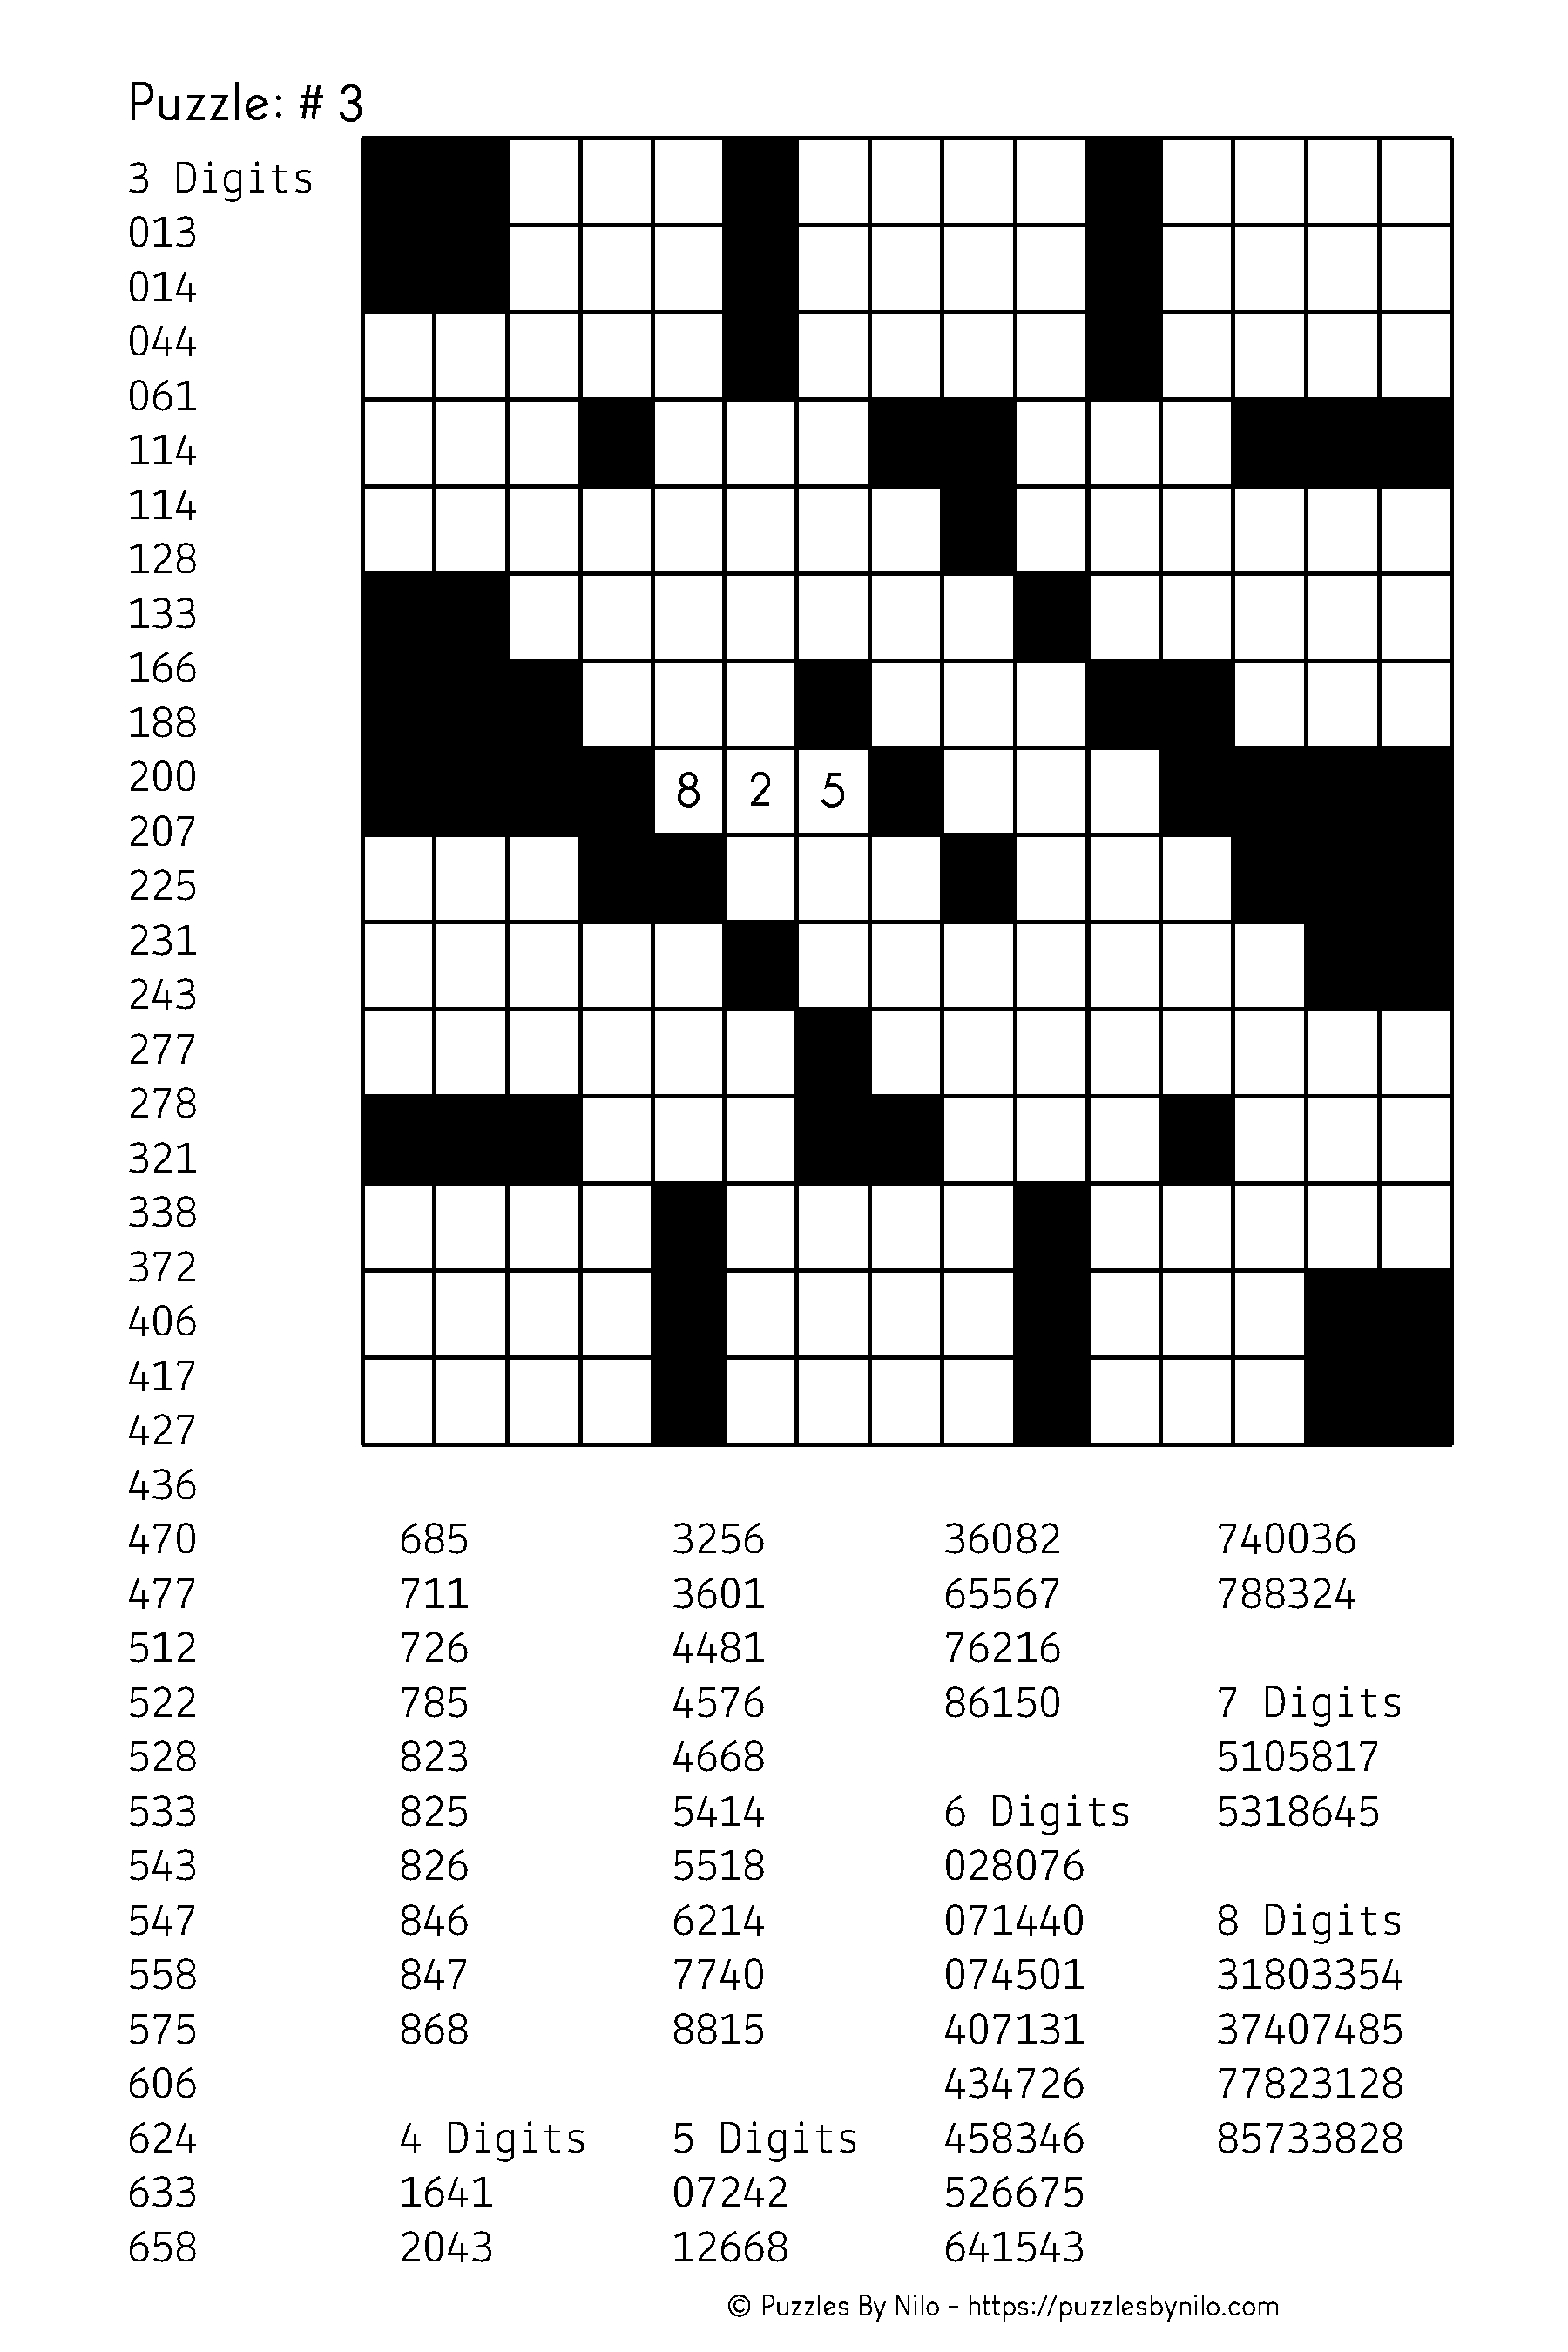 Get Your Free Puzzle Here! - Https://goo.gl/hxpjtw | Math Ideas - Free Printable Fill In Crossword Puzzles